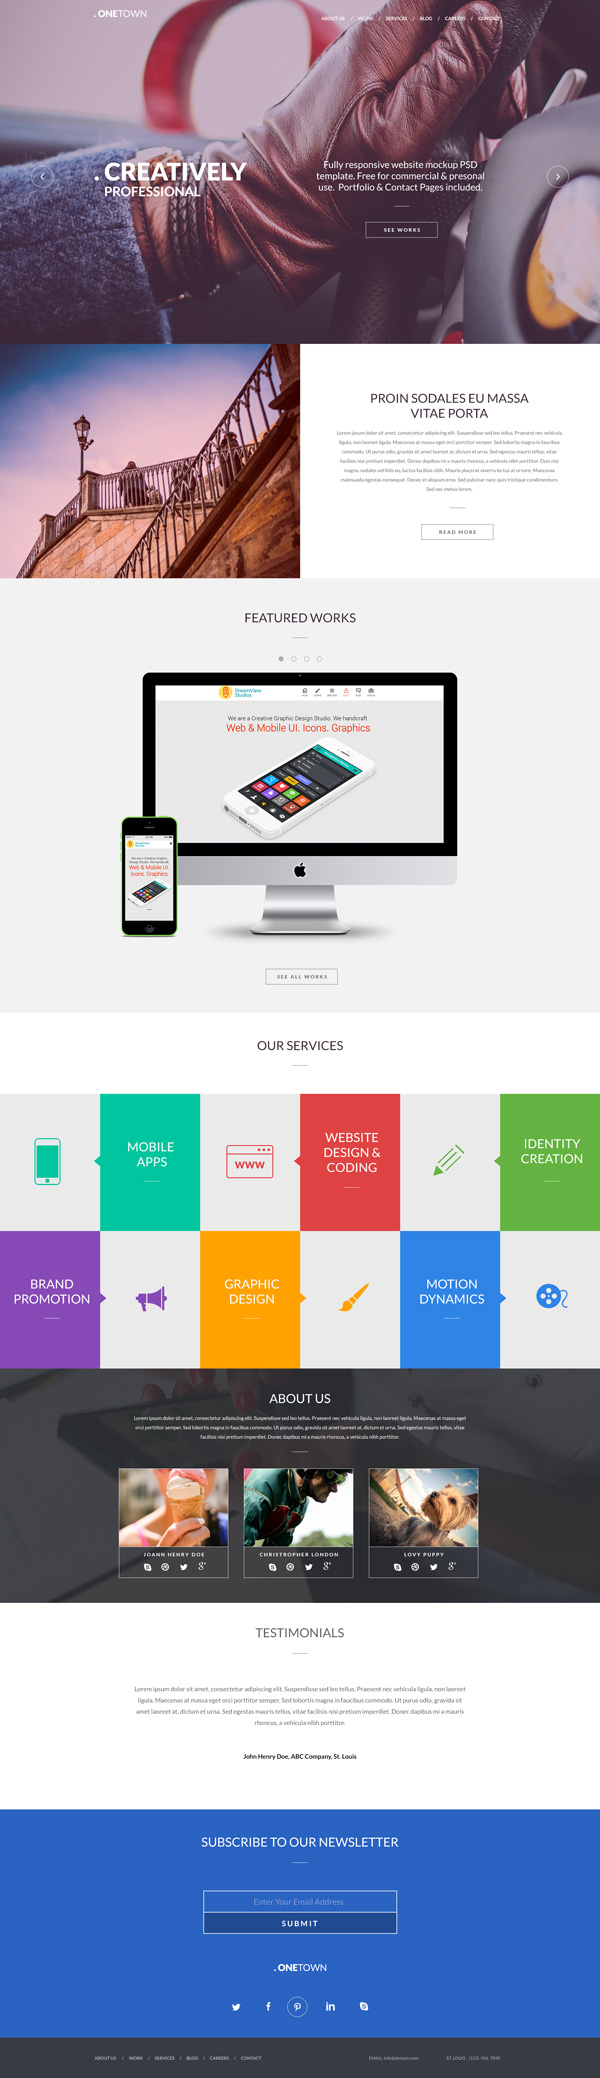 respy-web-template-preview